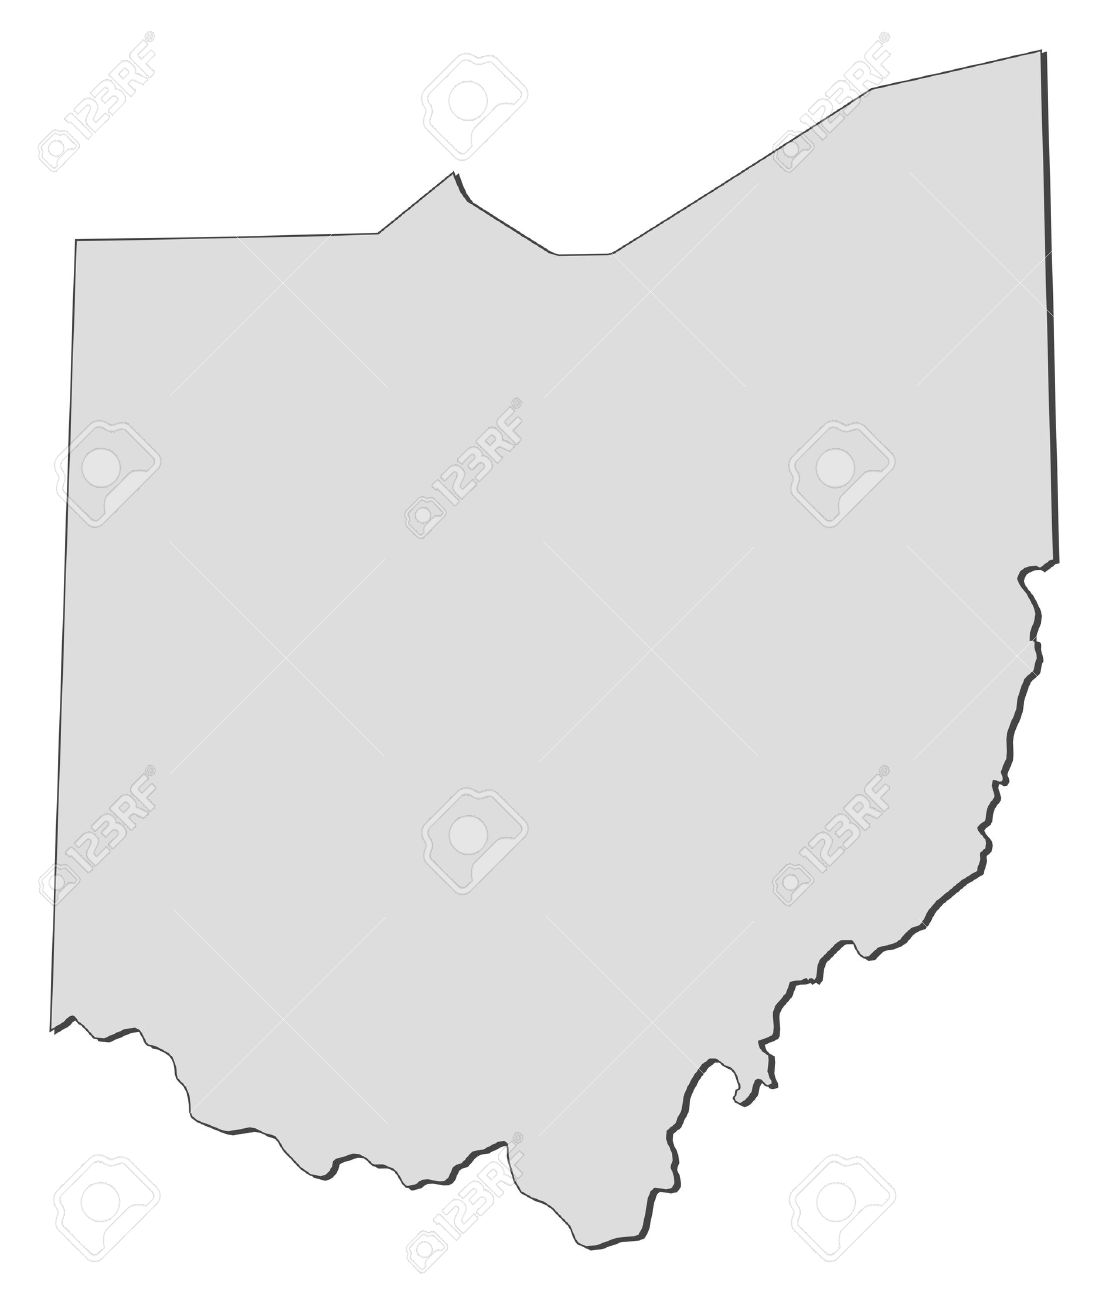 Ohio United States Map.Map Of Ohio A State Of United States Royalty Free Cliparts